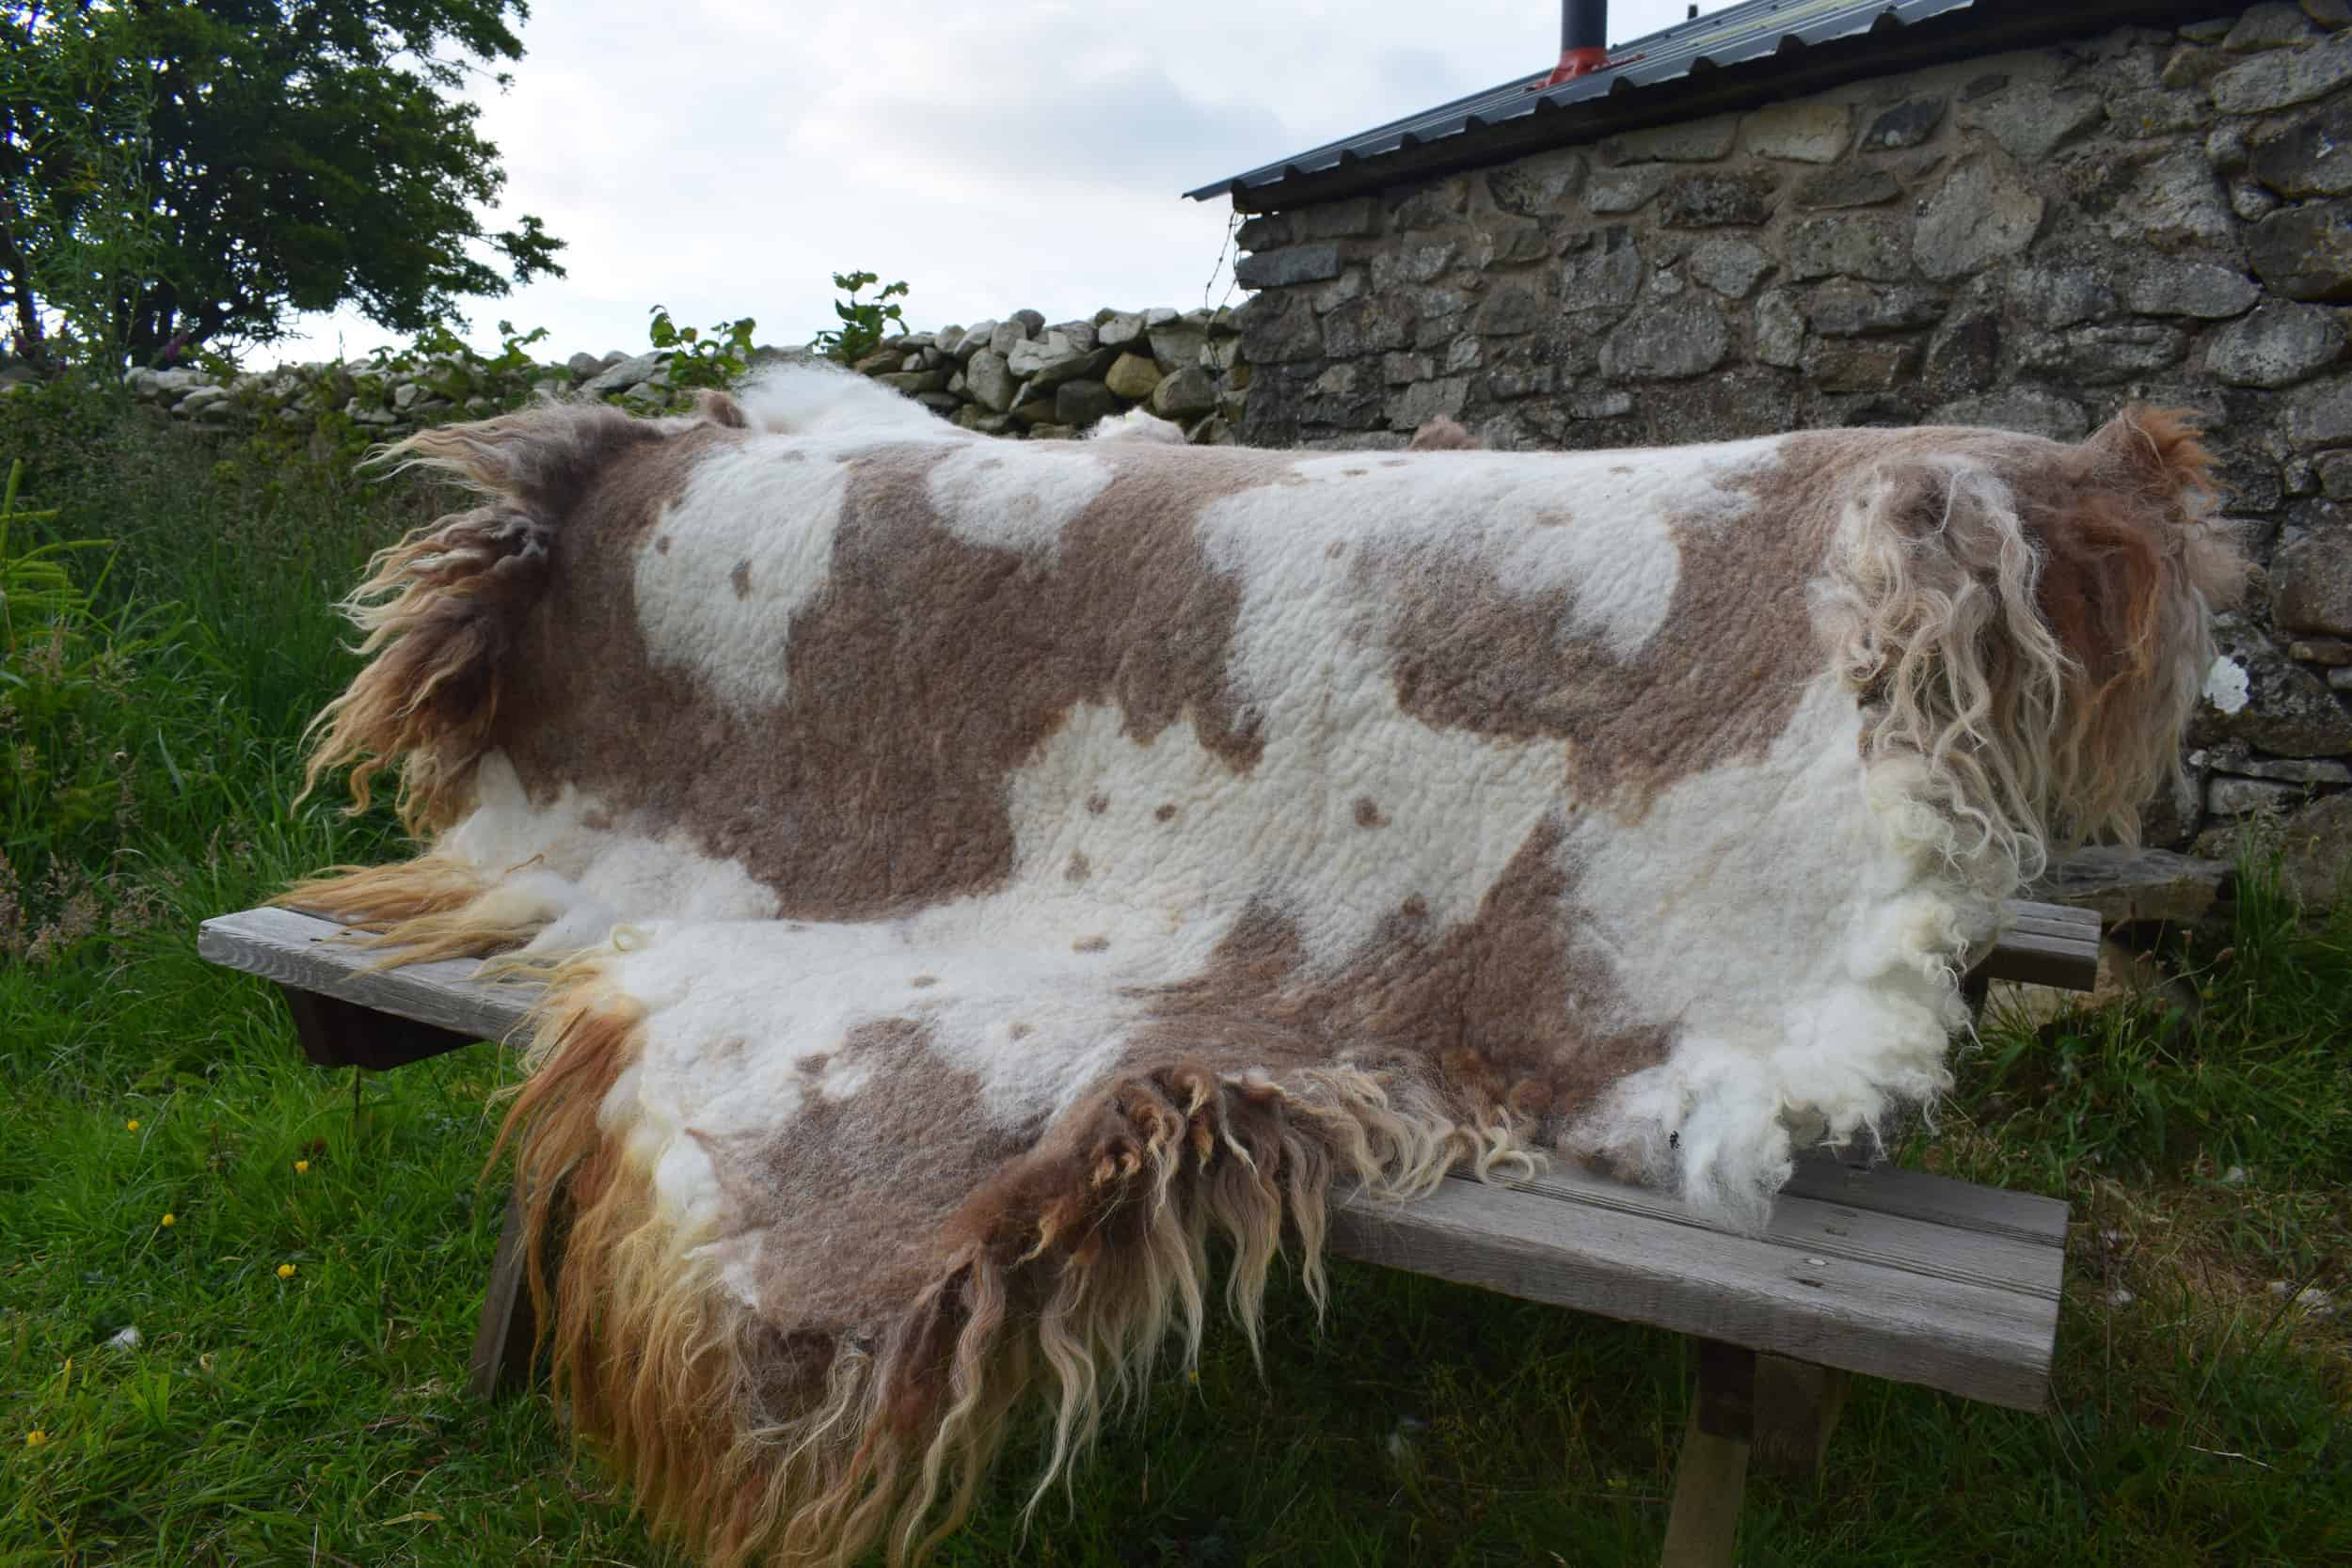 cow print wool Felted fleece rug vegetarian sheepskin dandelion living rug natural sheep friendly ethical wool sustainable